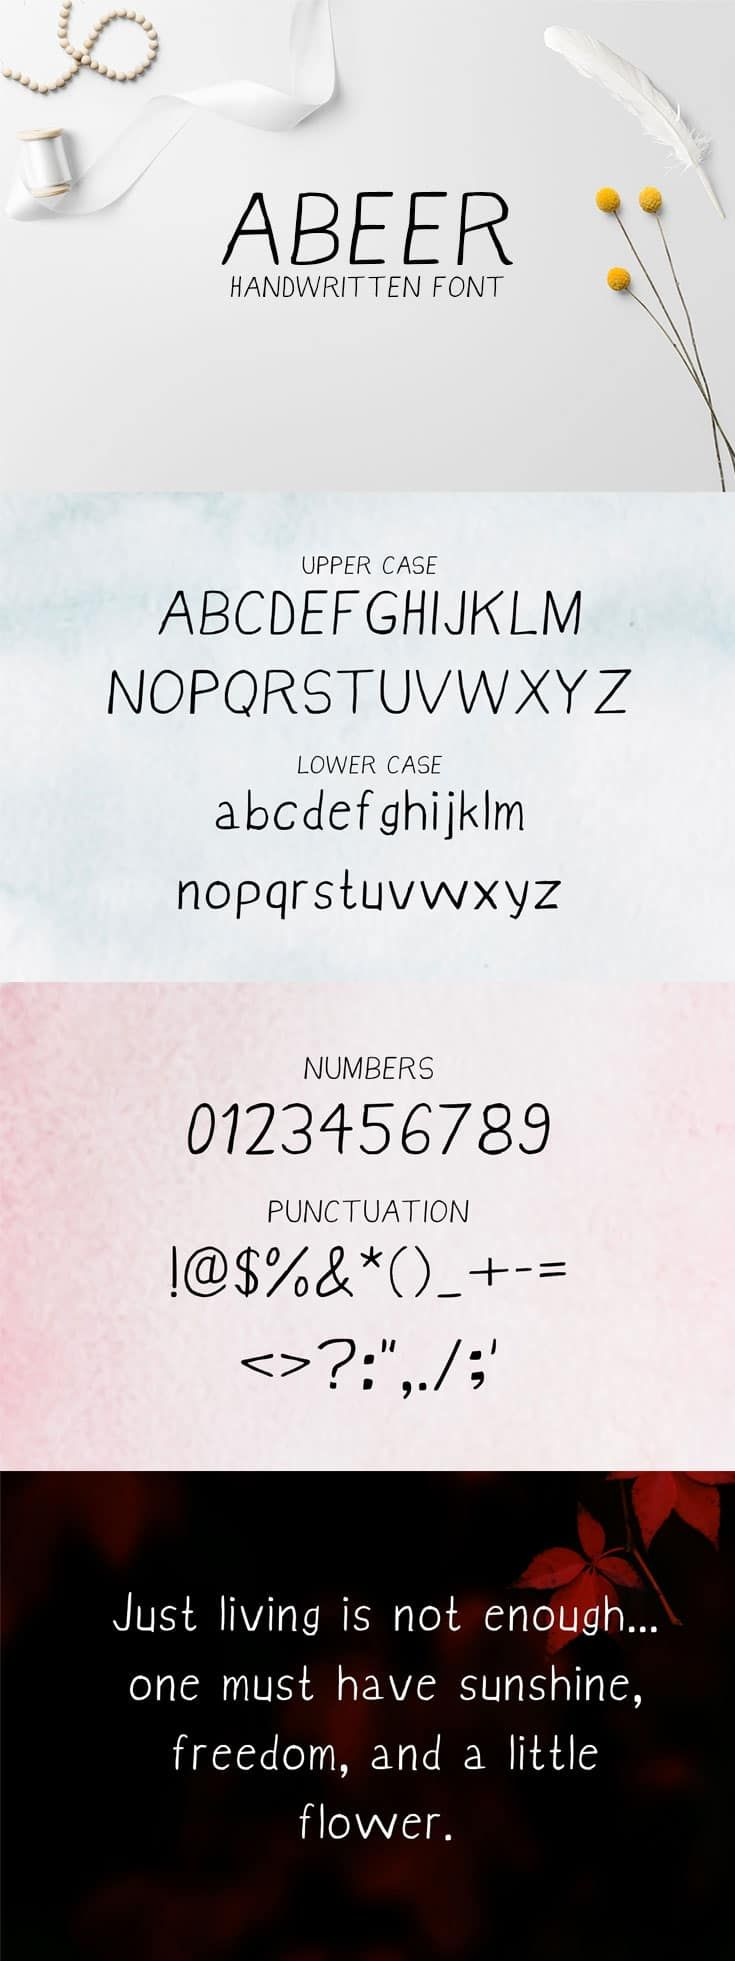 So Today We Are Releasing This Font Which Reflects A Playful Handwriting Style That Will Be Great For